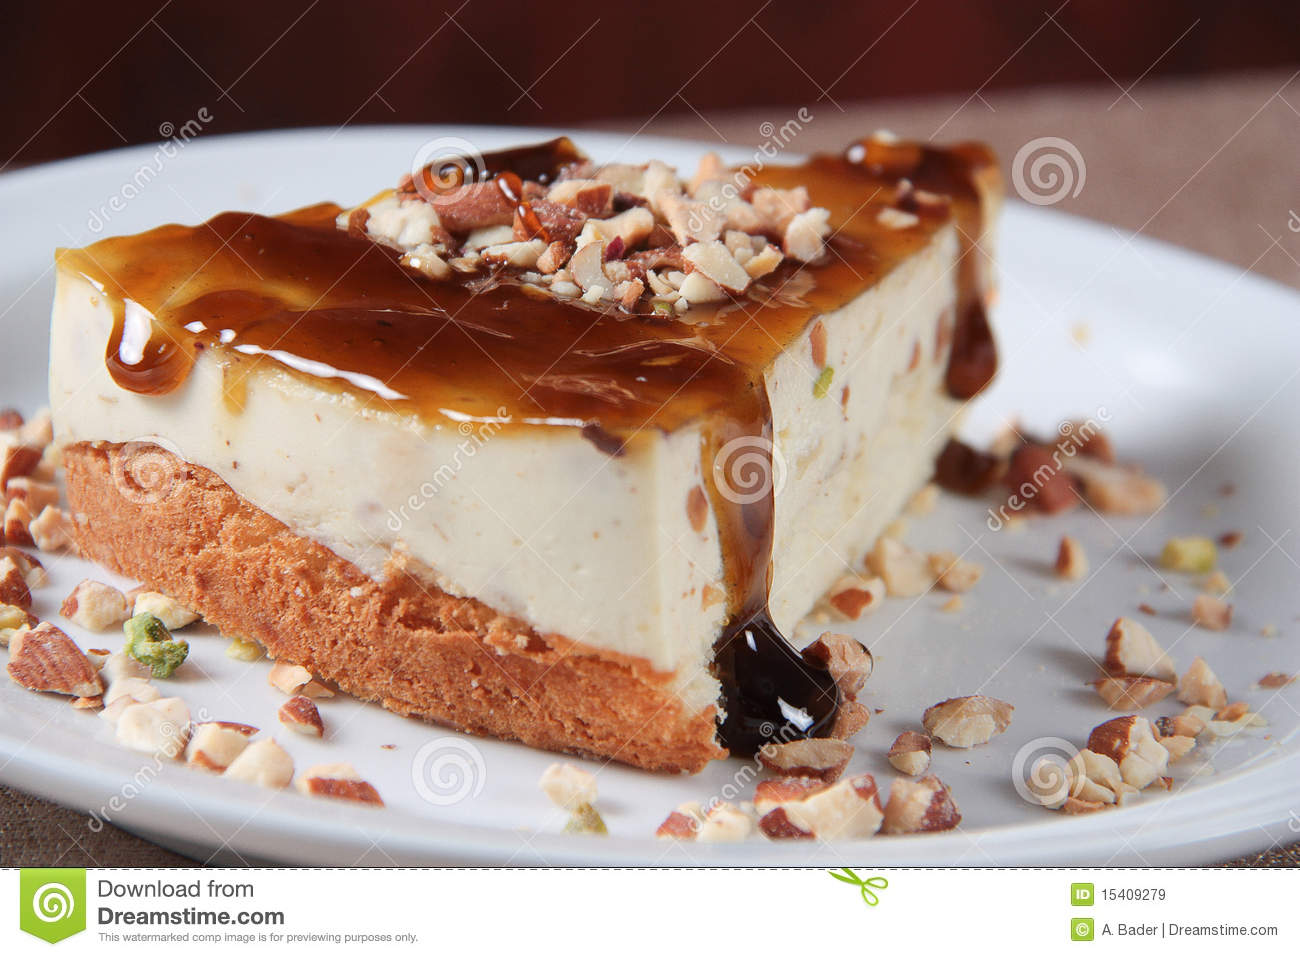 Cream Caramel Cheesecake Royalty Free Stock Images - Image: 15409279